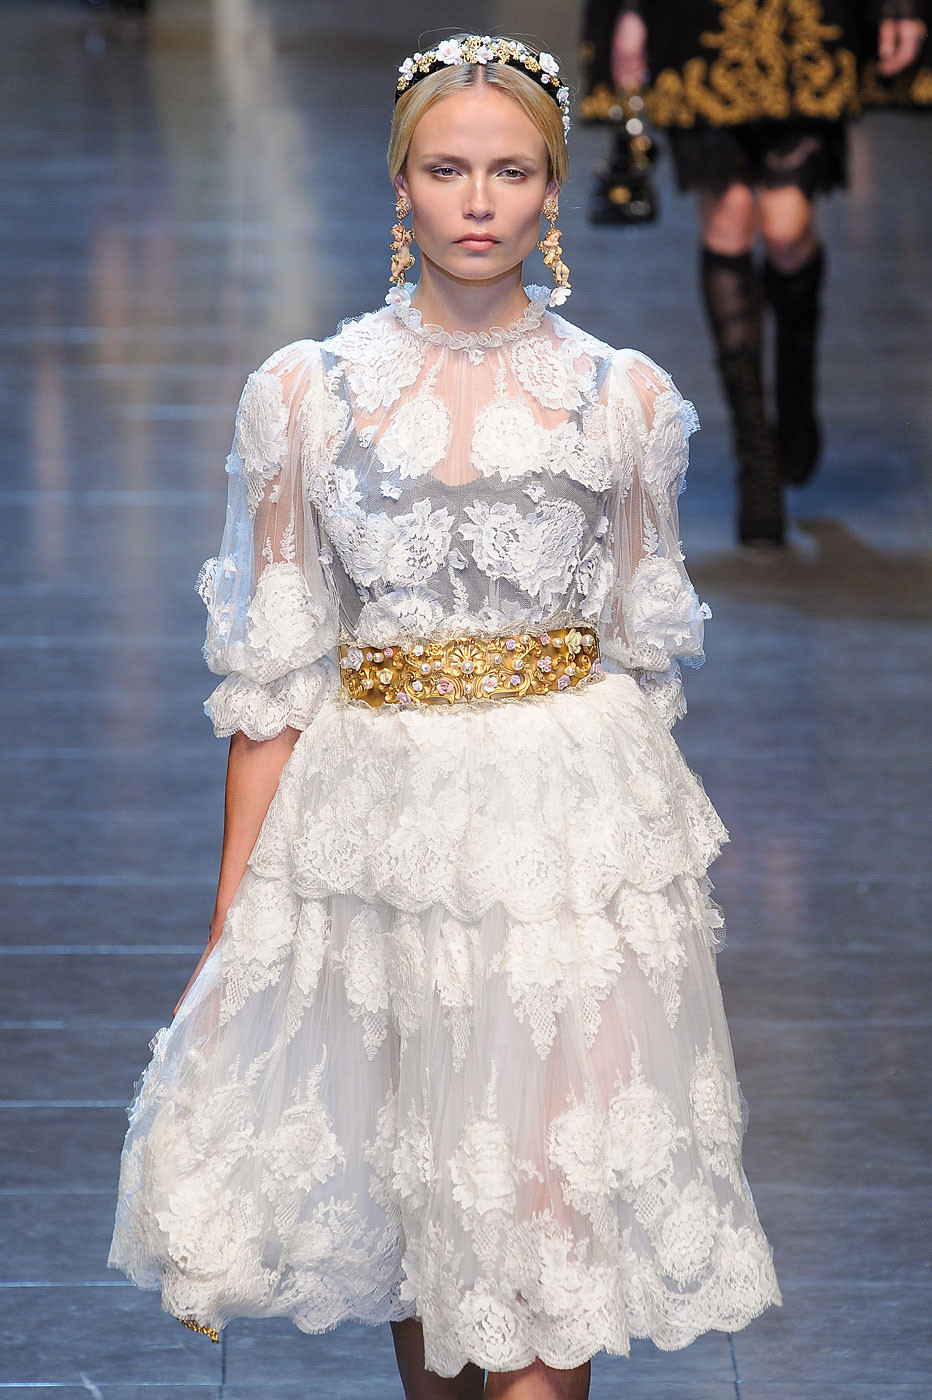 Dolce&Gabbana Fall/Winter 2012